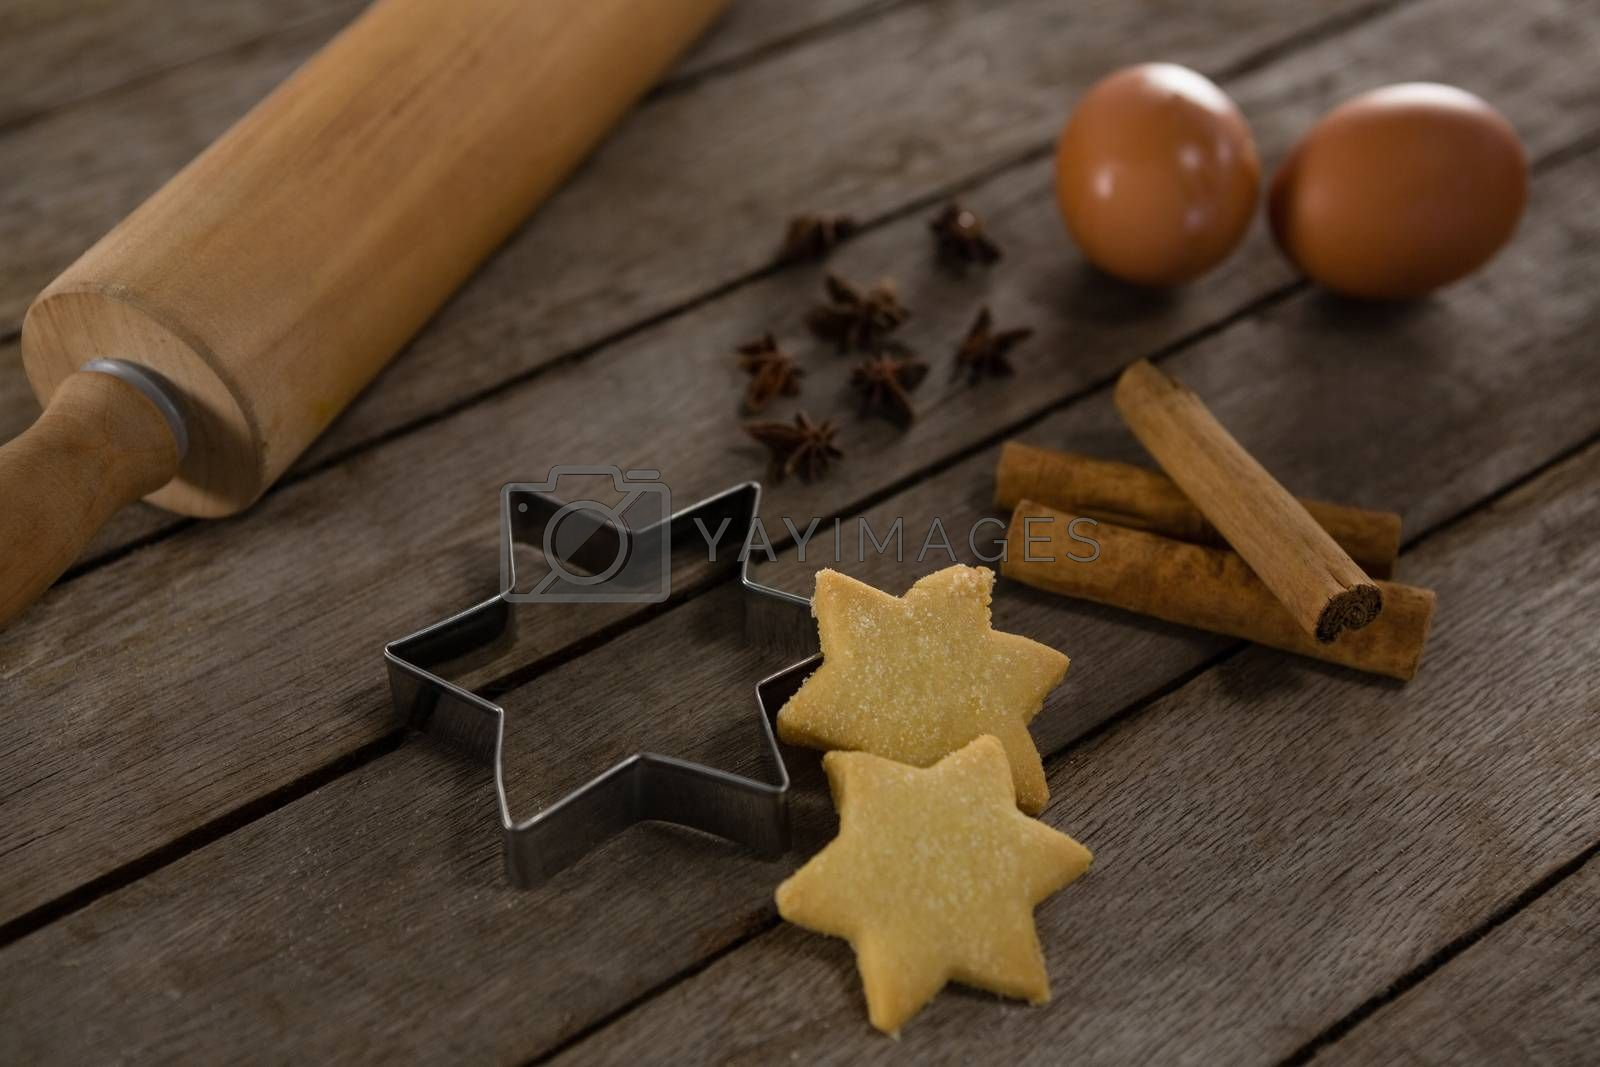 Rolling pin with eggs, cookie cutter, cookies, cinnamon and anise by Wavebreakmedia